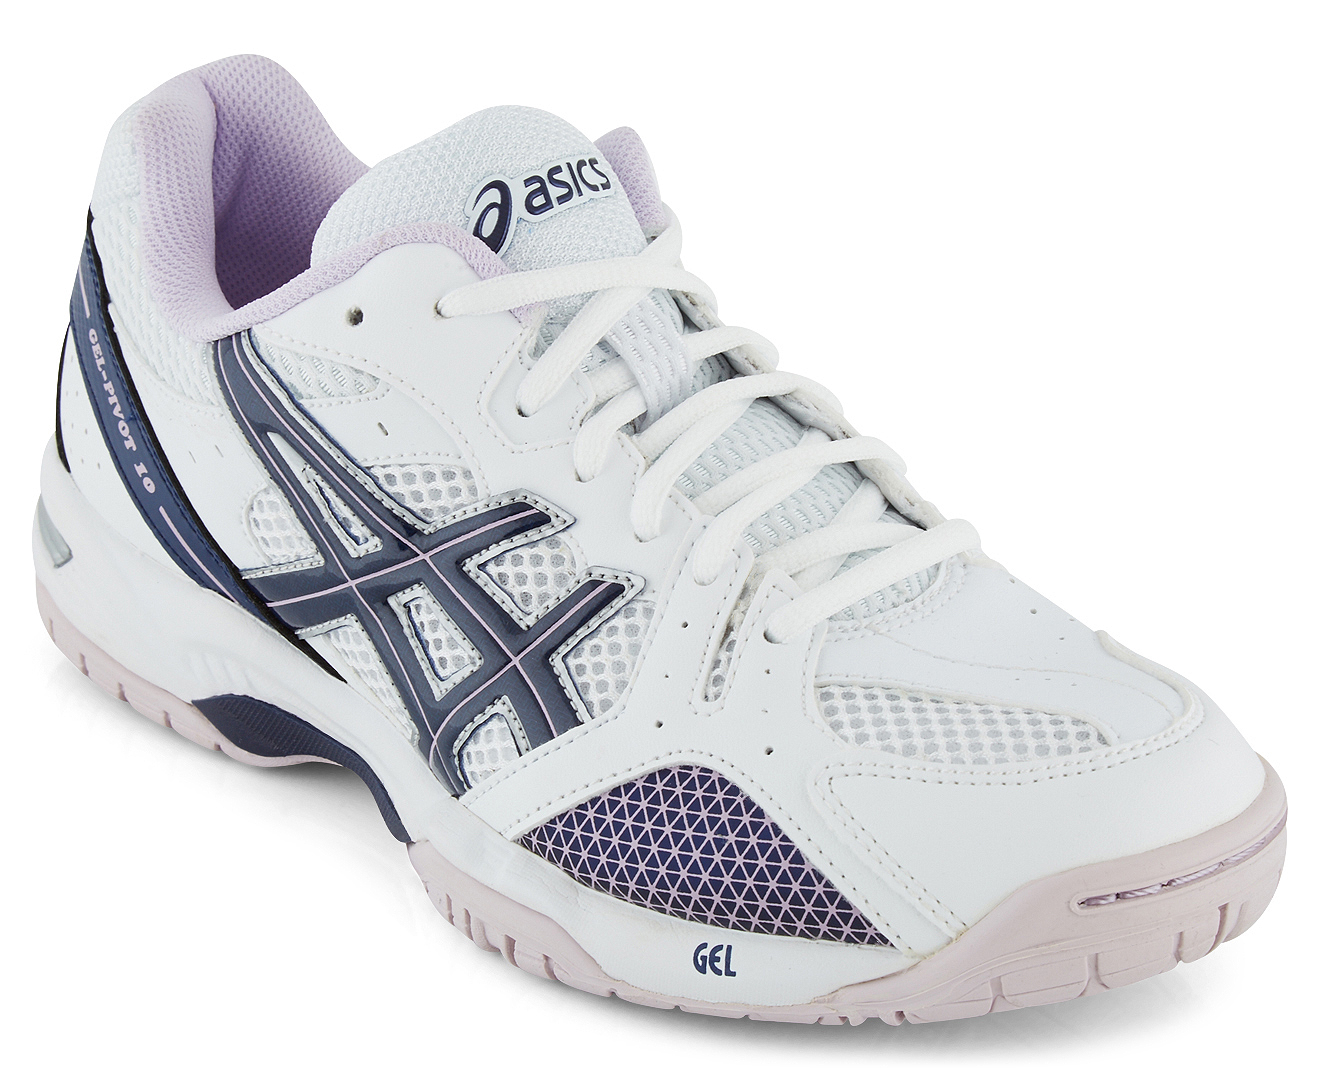 Asics Women U0026 39 S Gel-pivot 10 Netball Shoes  Indigo Blue  Lilac